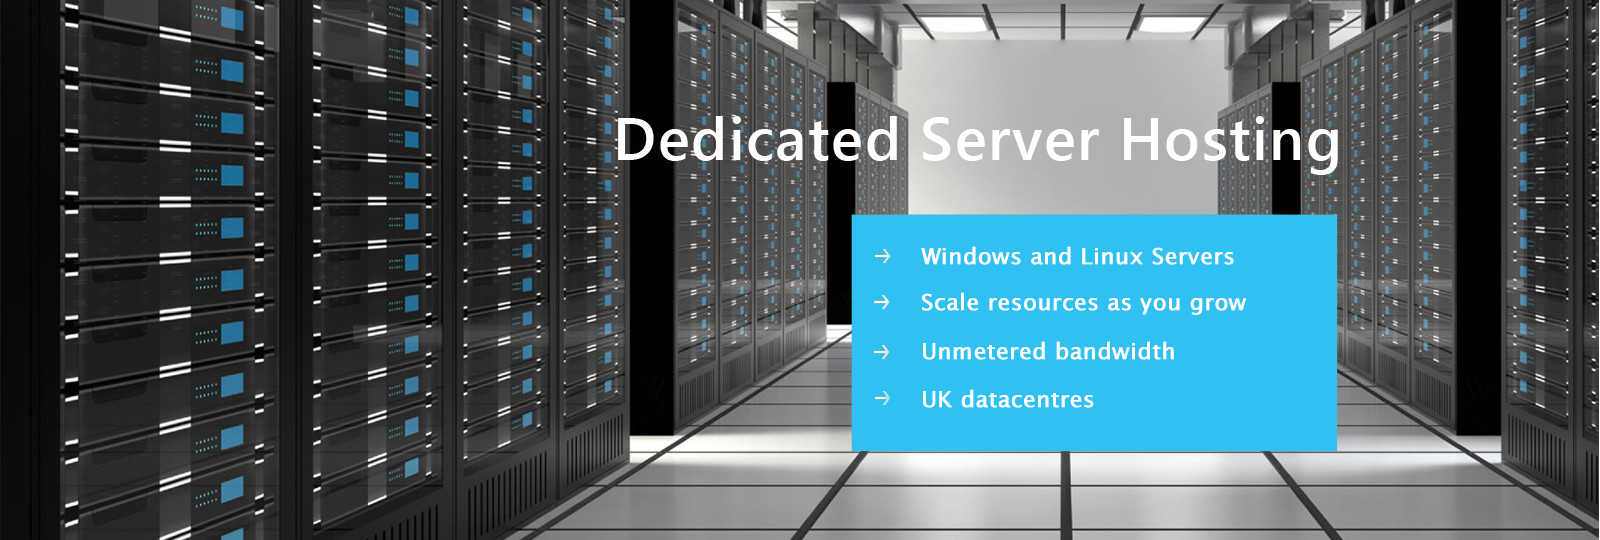 fully-managed-dedicated-server-hosting-uk